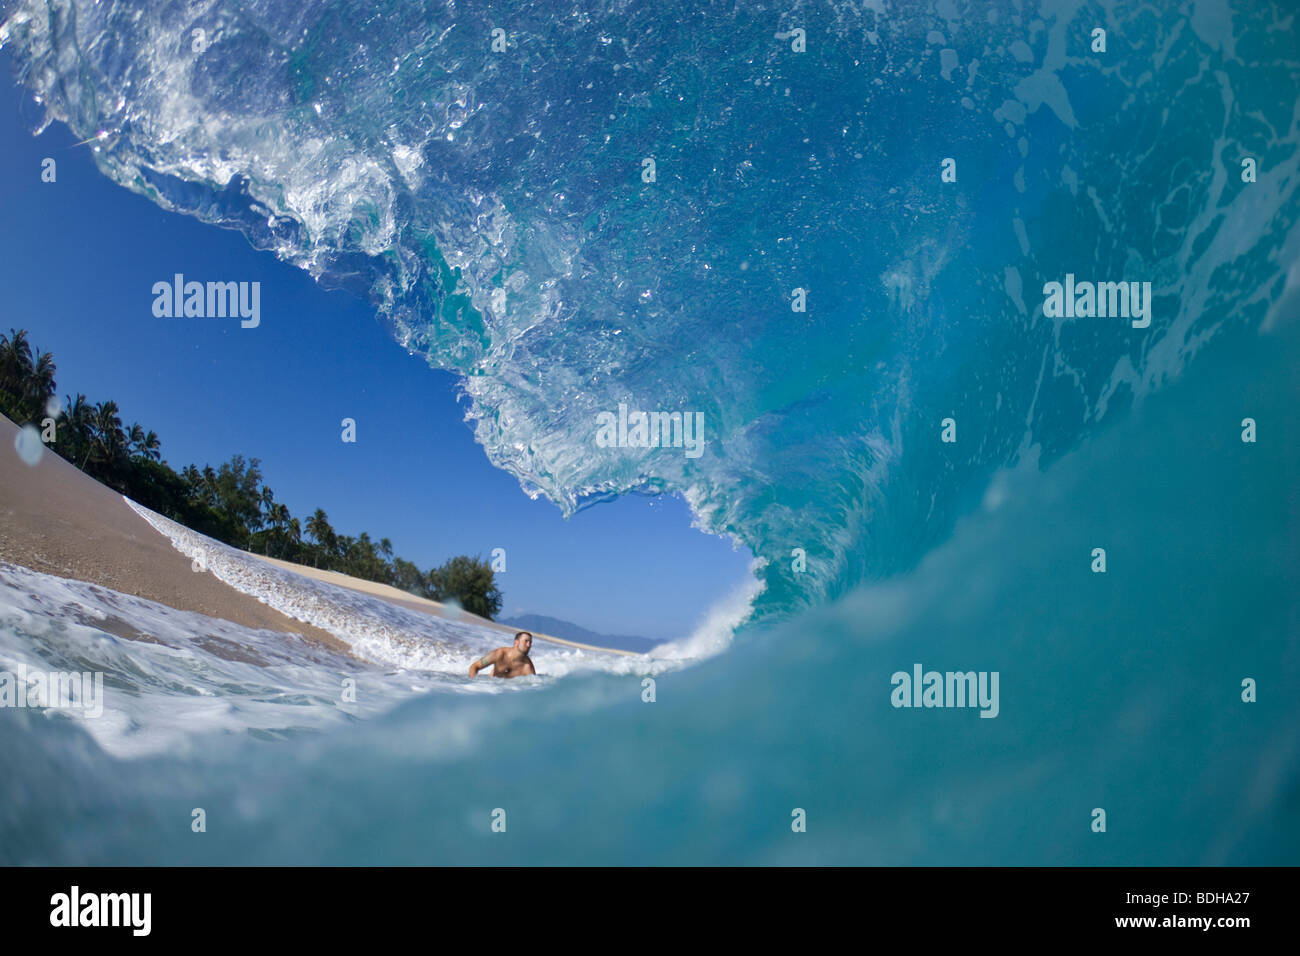 A young man about to be hit by wave at Keiki Beach on the North Shore of Oahu, Hawaii. - Stock Image